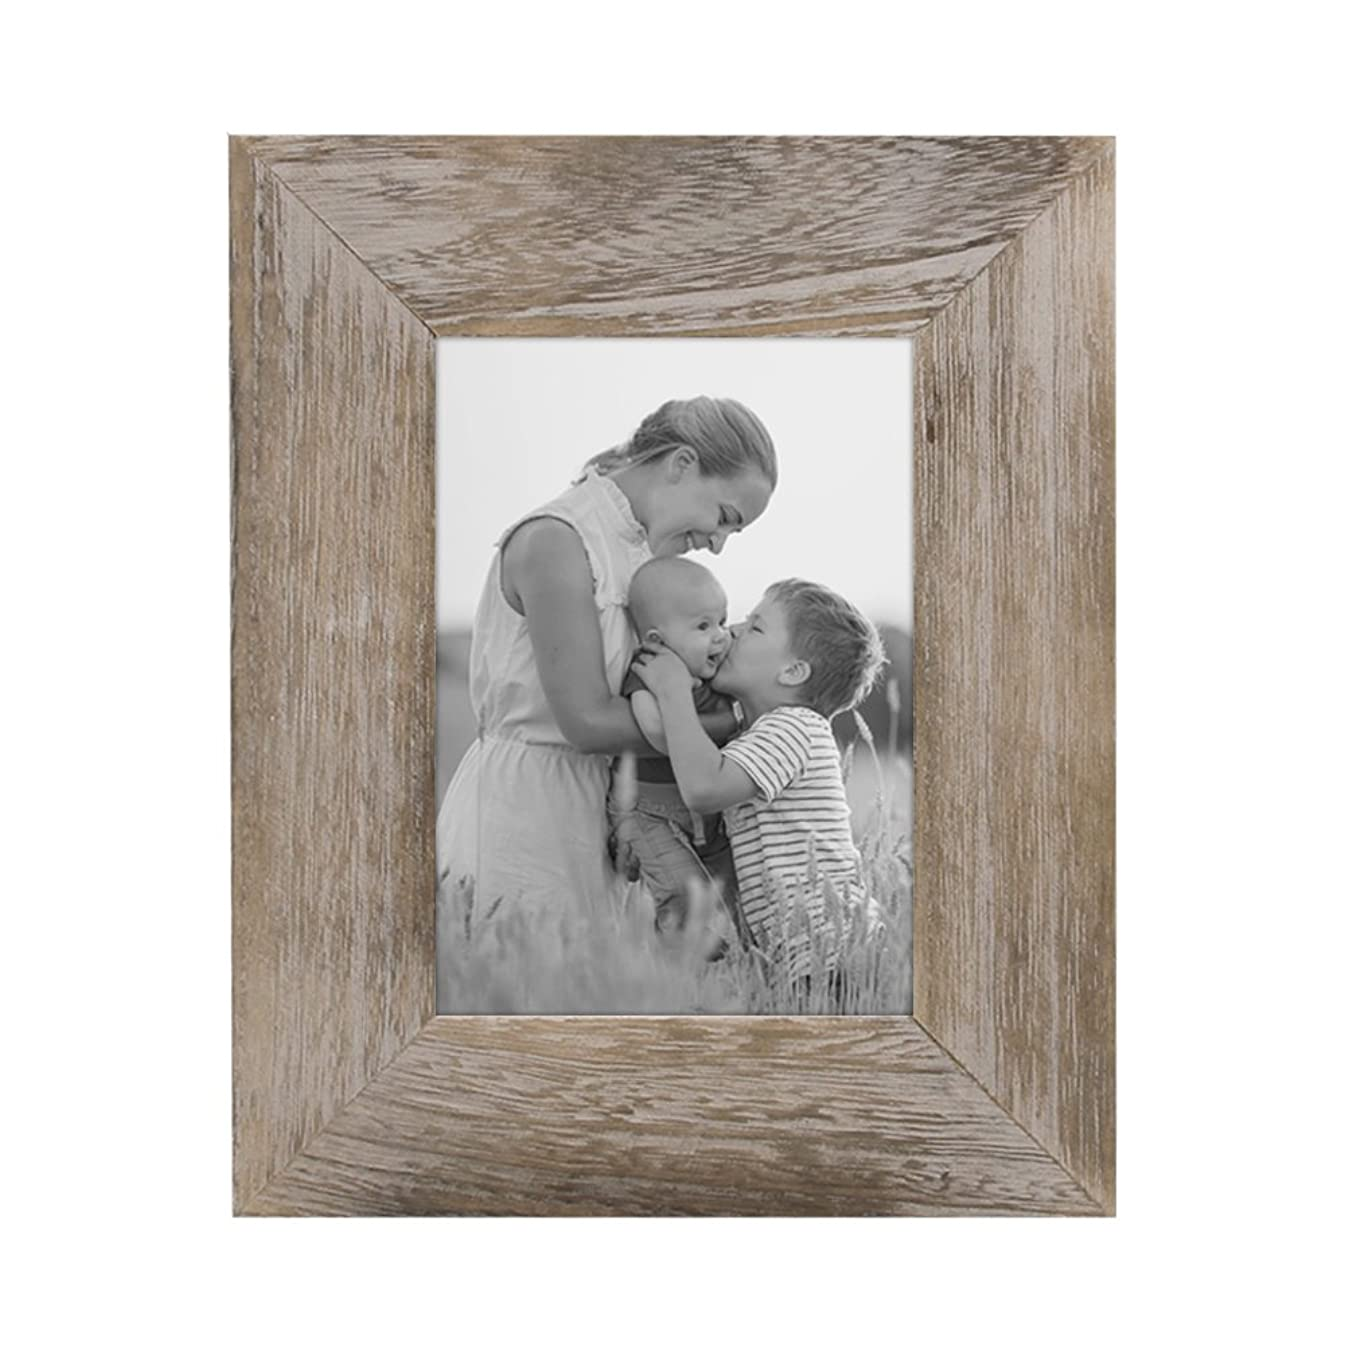 Afuly Rustic Picture Frame 5x7 Brown Distressed Reclaimed Wood Photo Frames Fathers Gifts